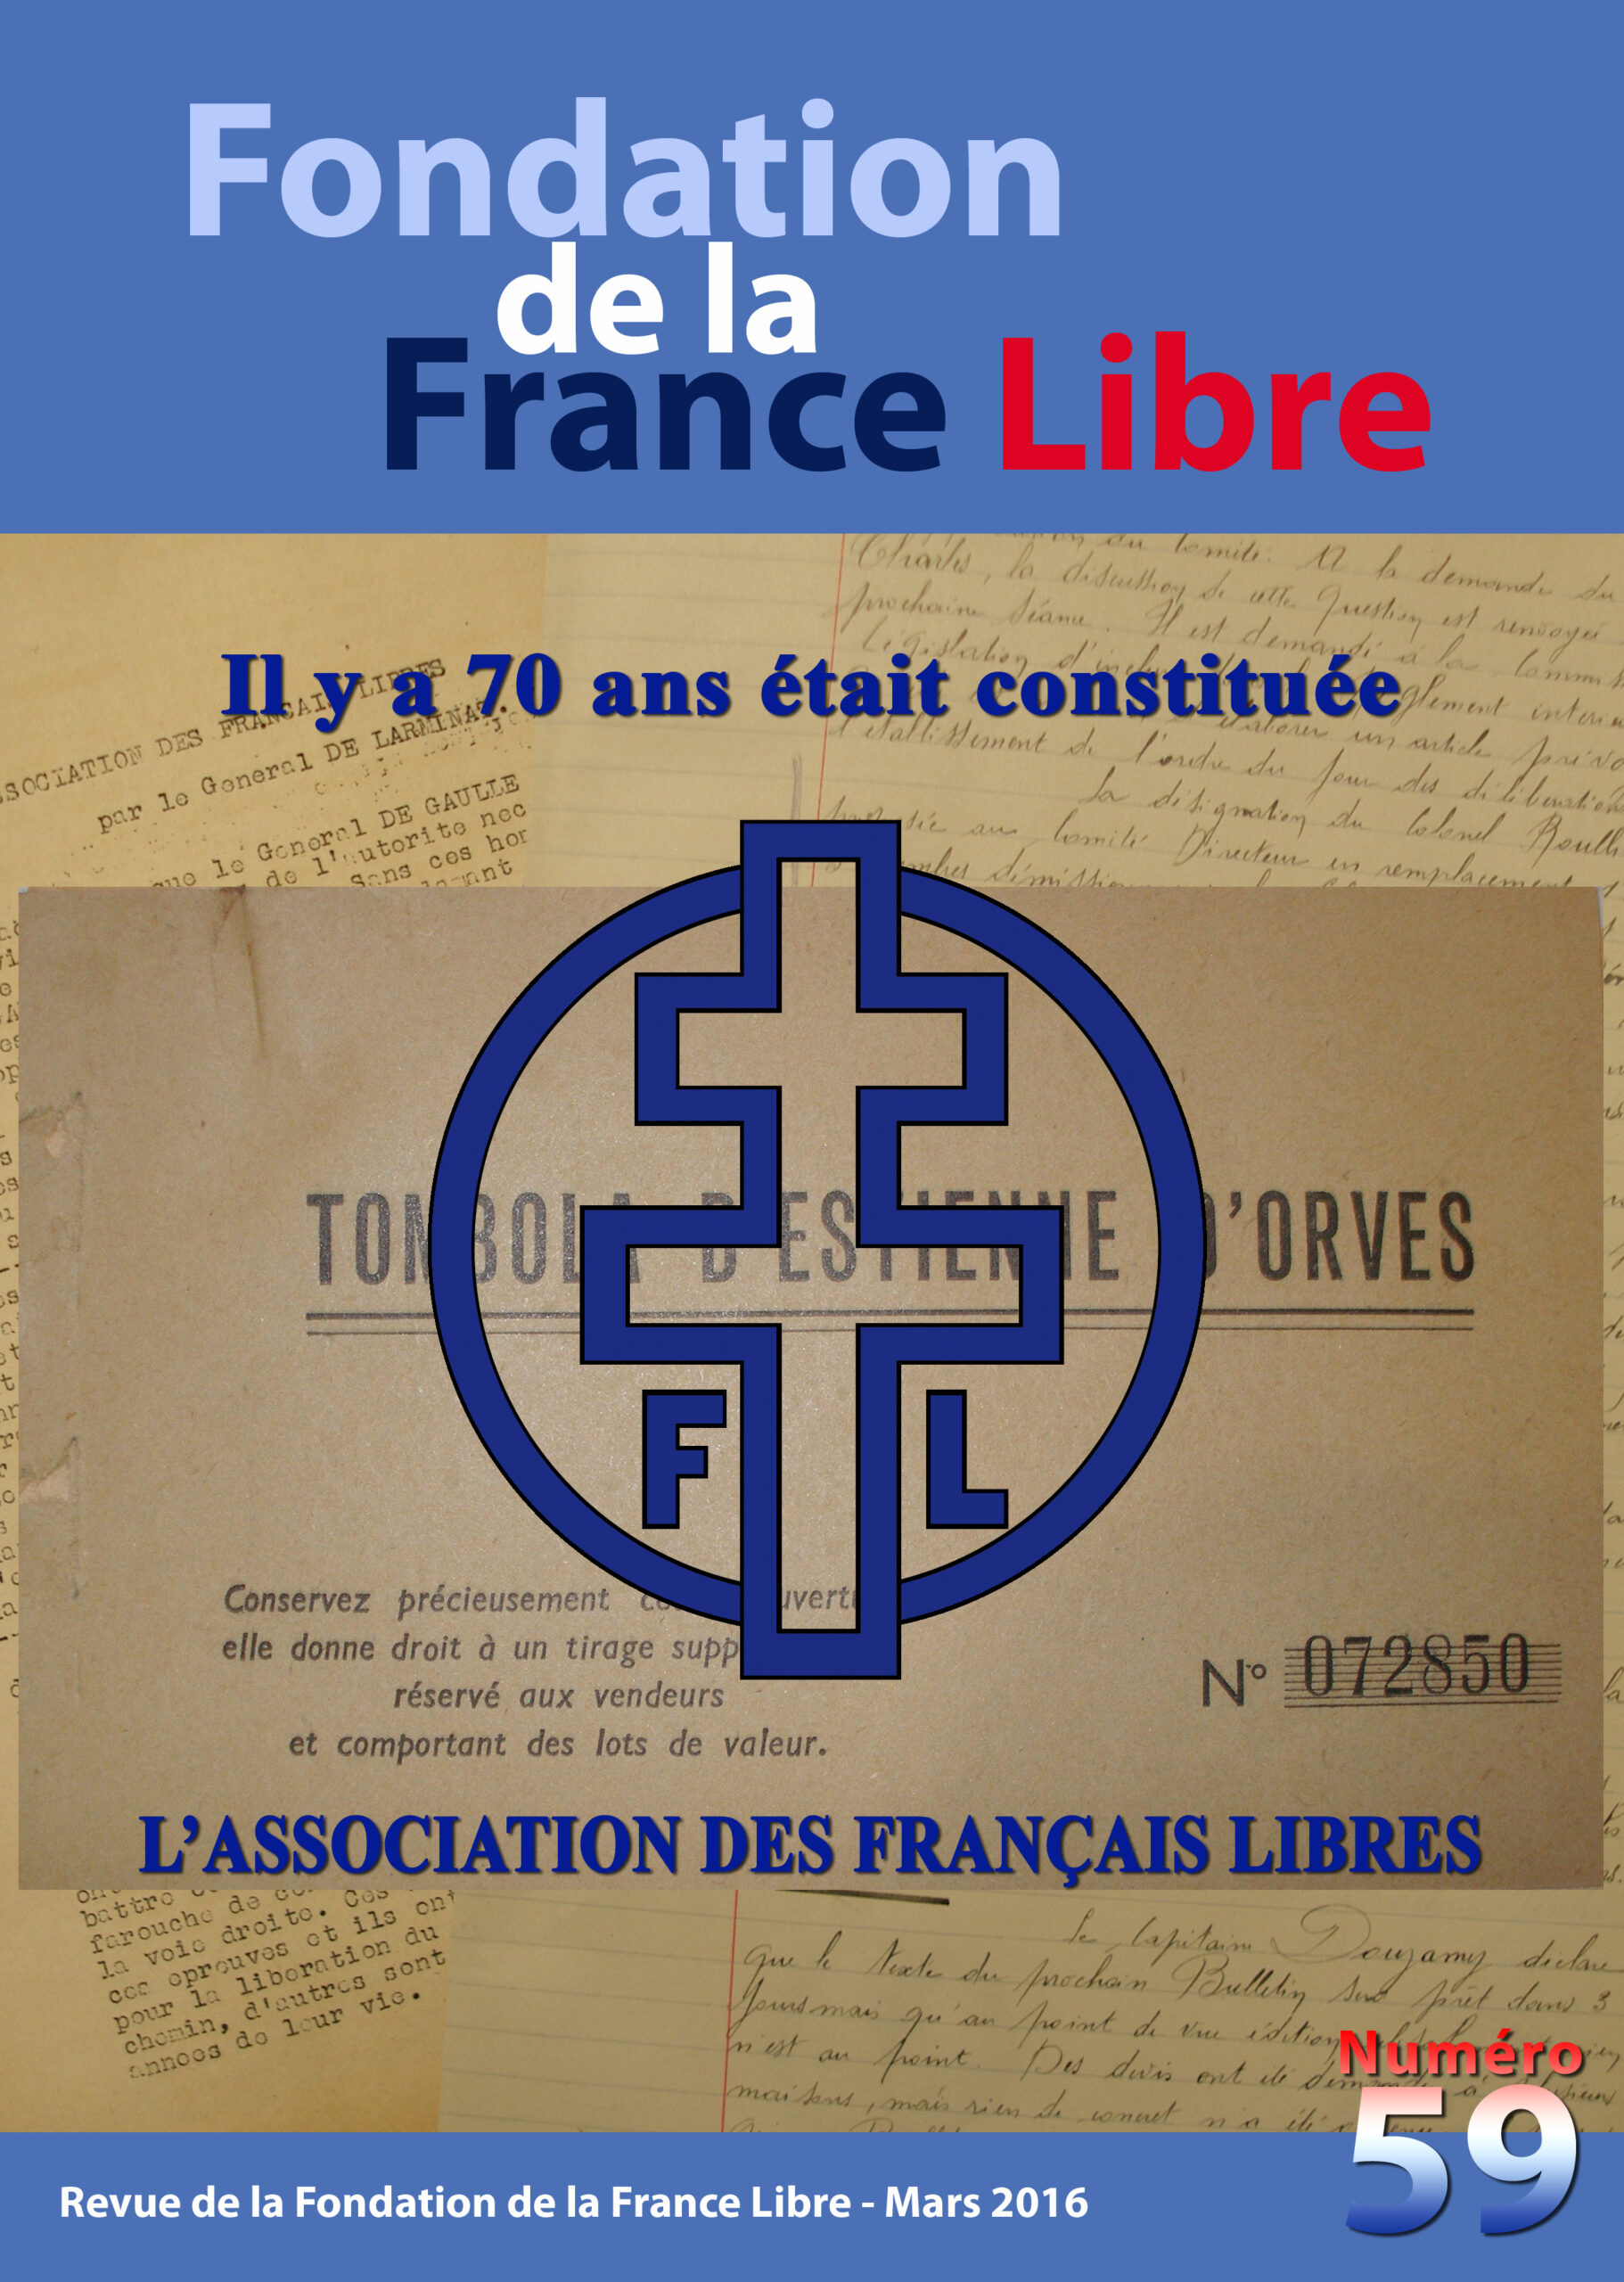 Fondation de la France Libre, n° 59, mars 2016